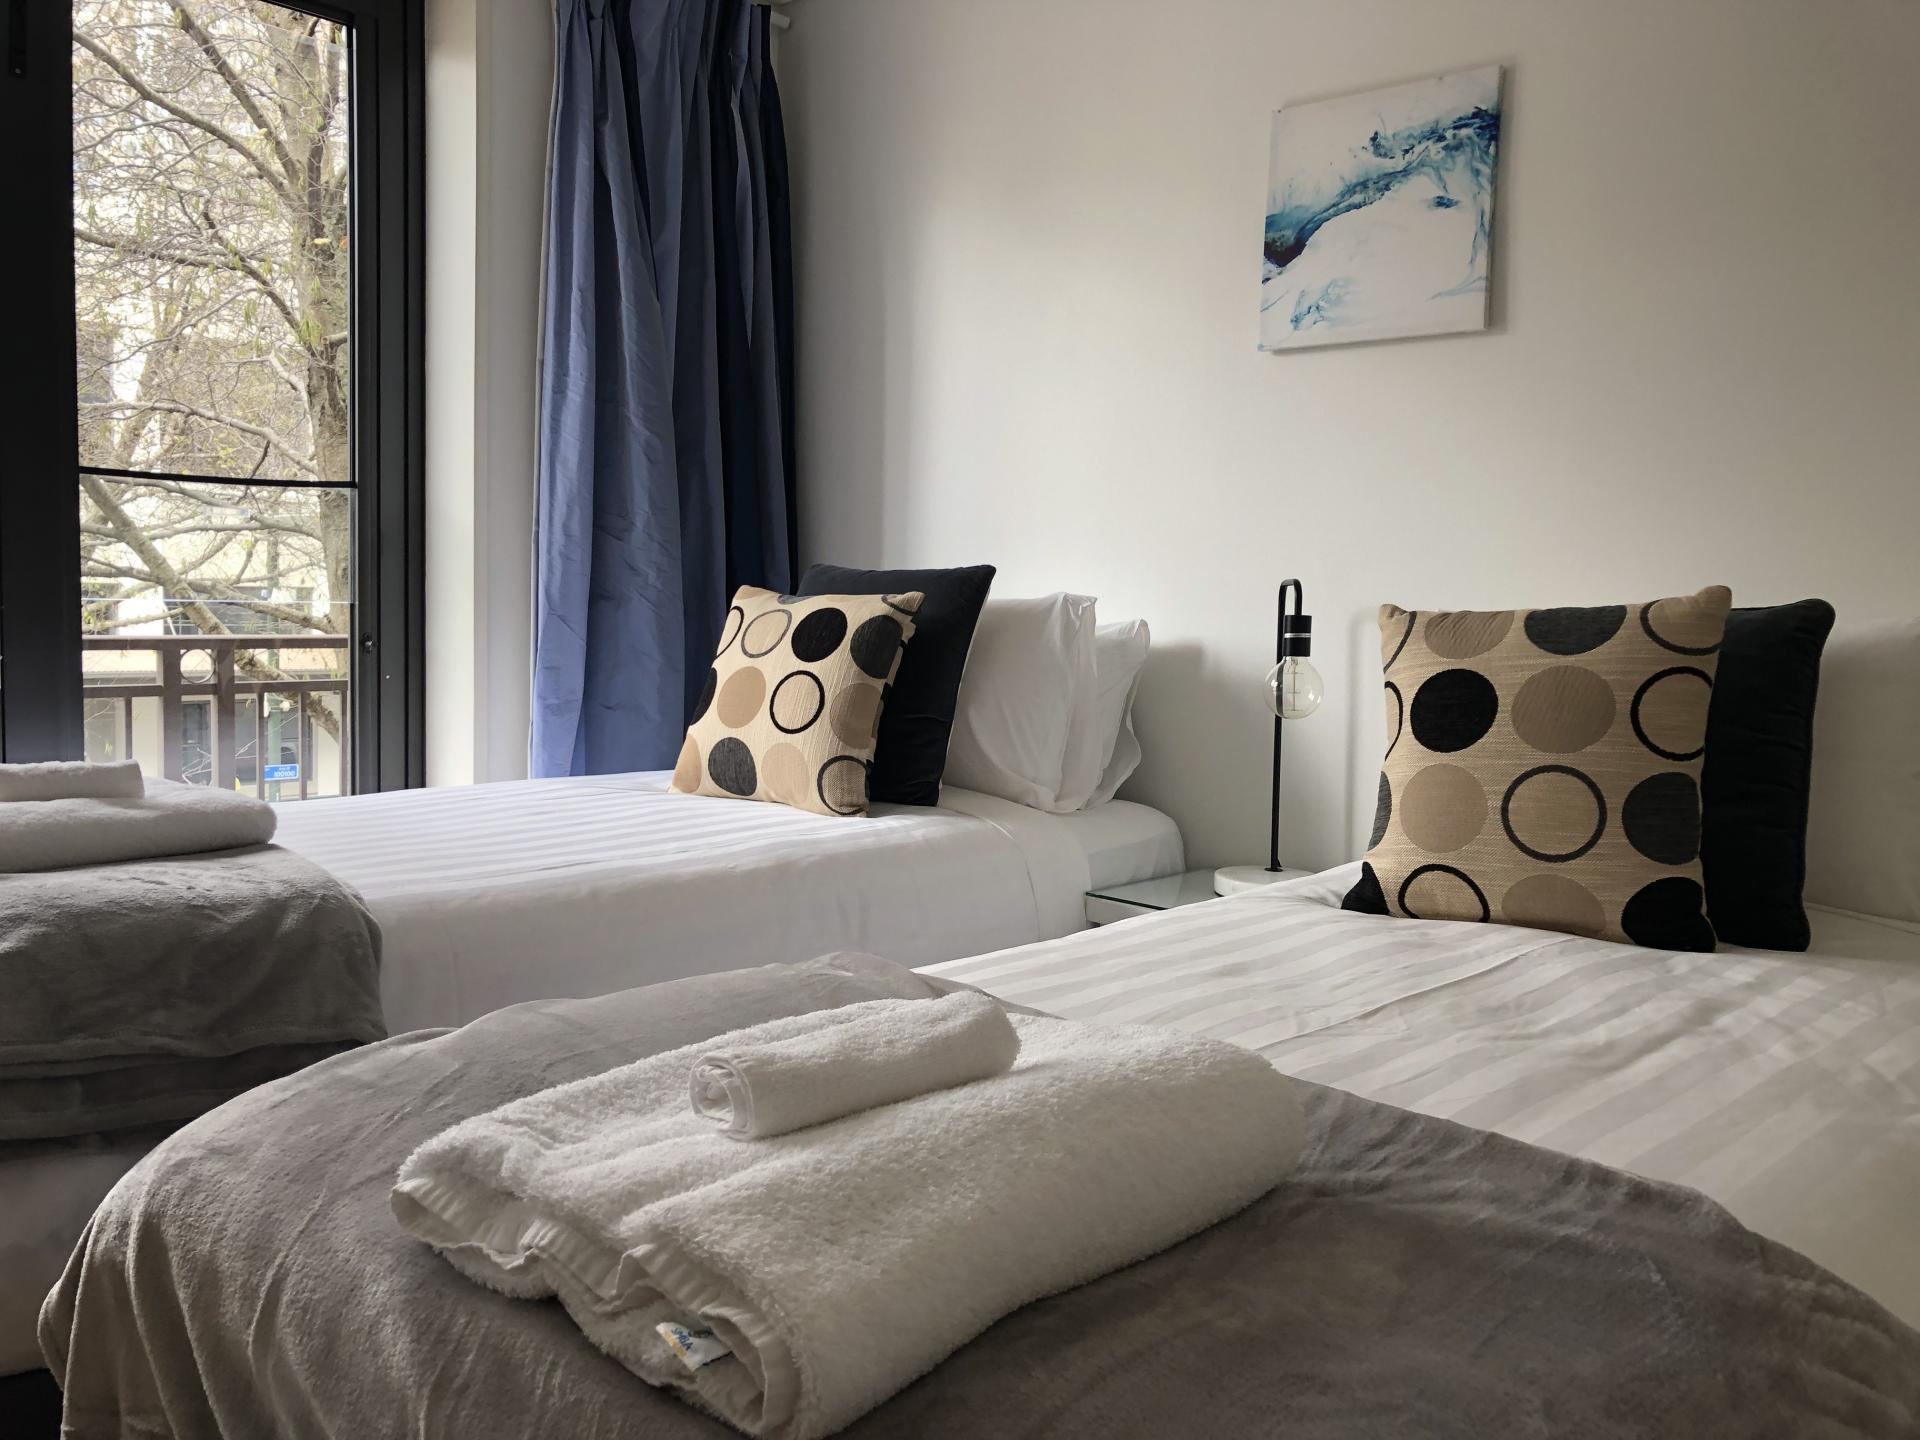 Beds at The Parc Apartment